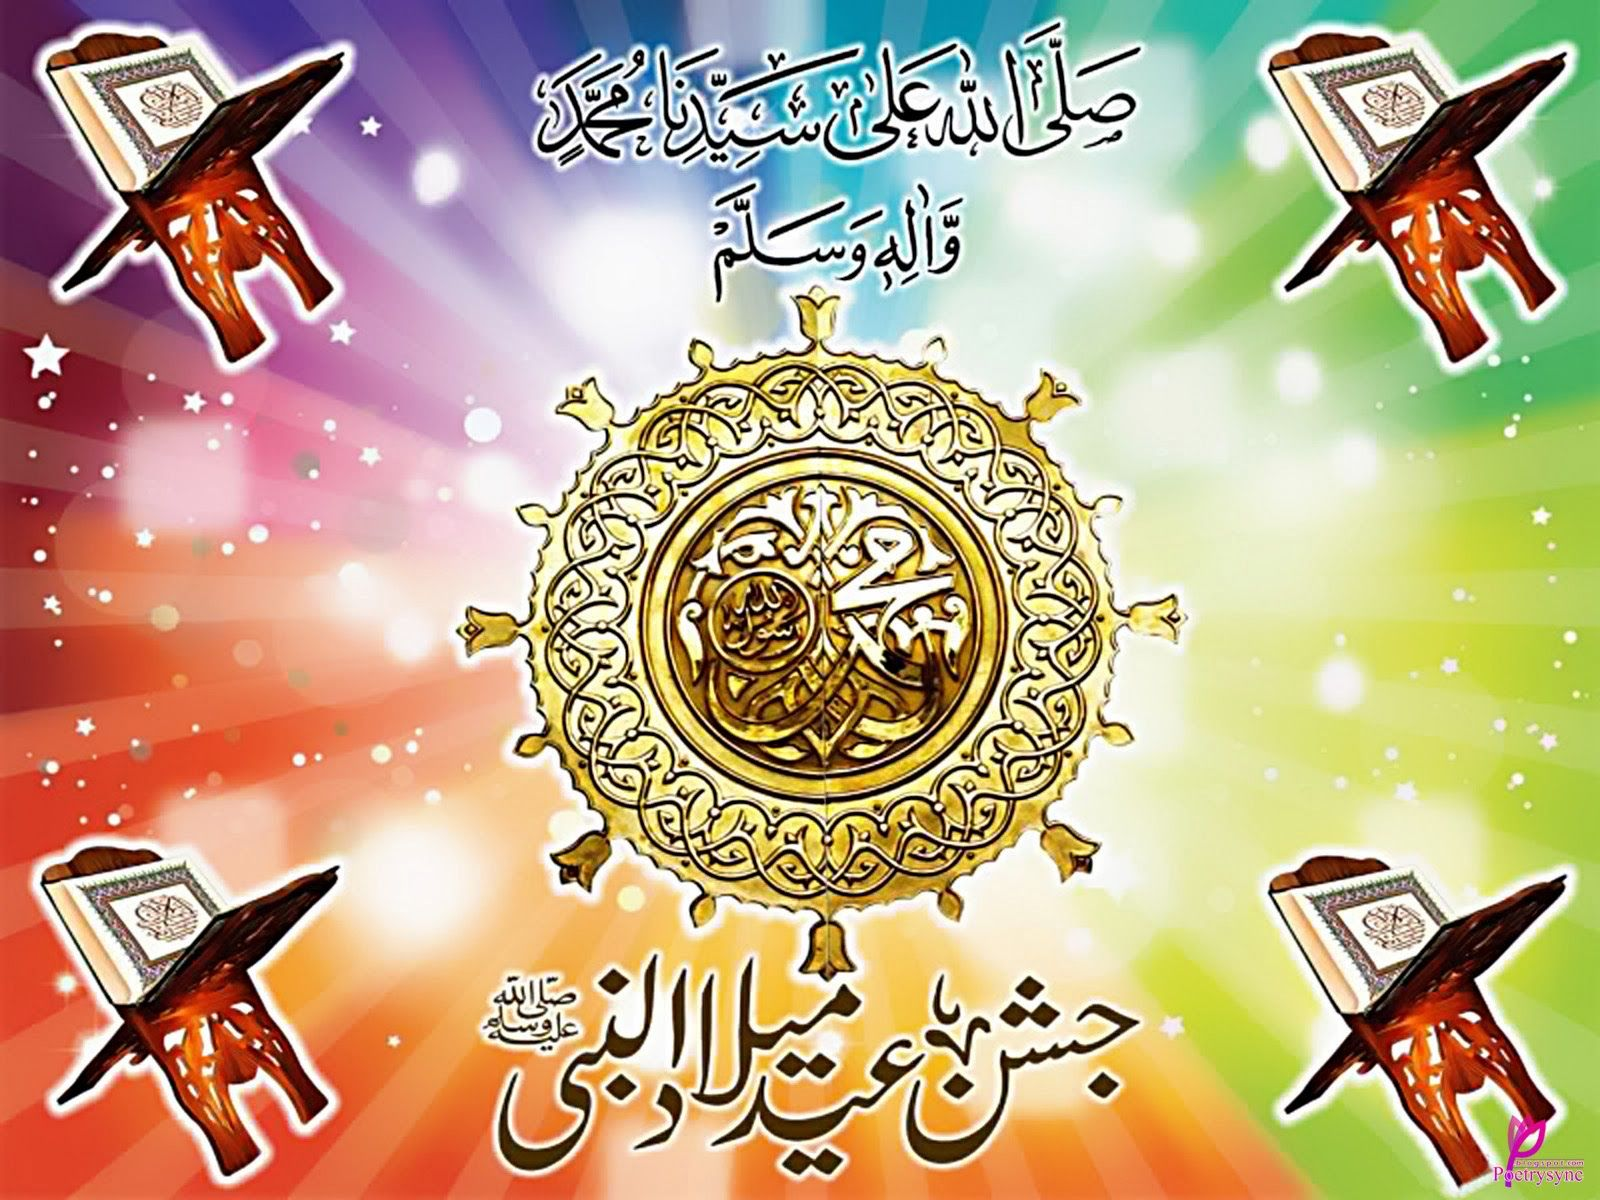 Wallpaper download eid milad un nabi - Find This Pin And More On Eid Milad Un Nabi